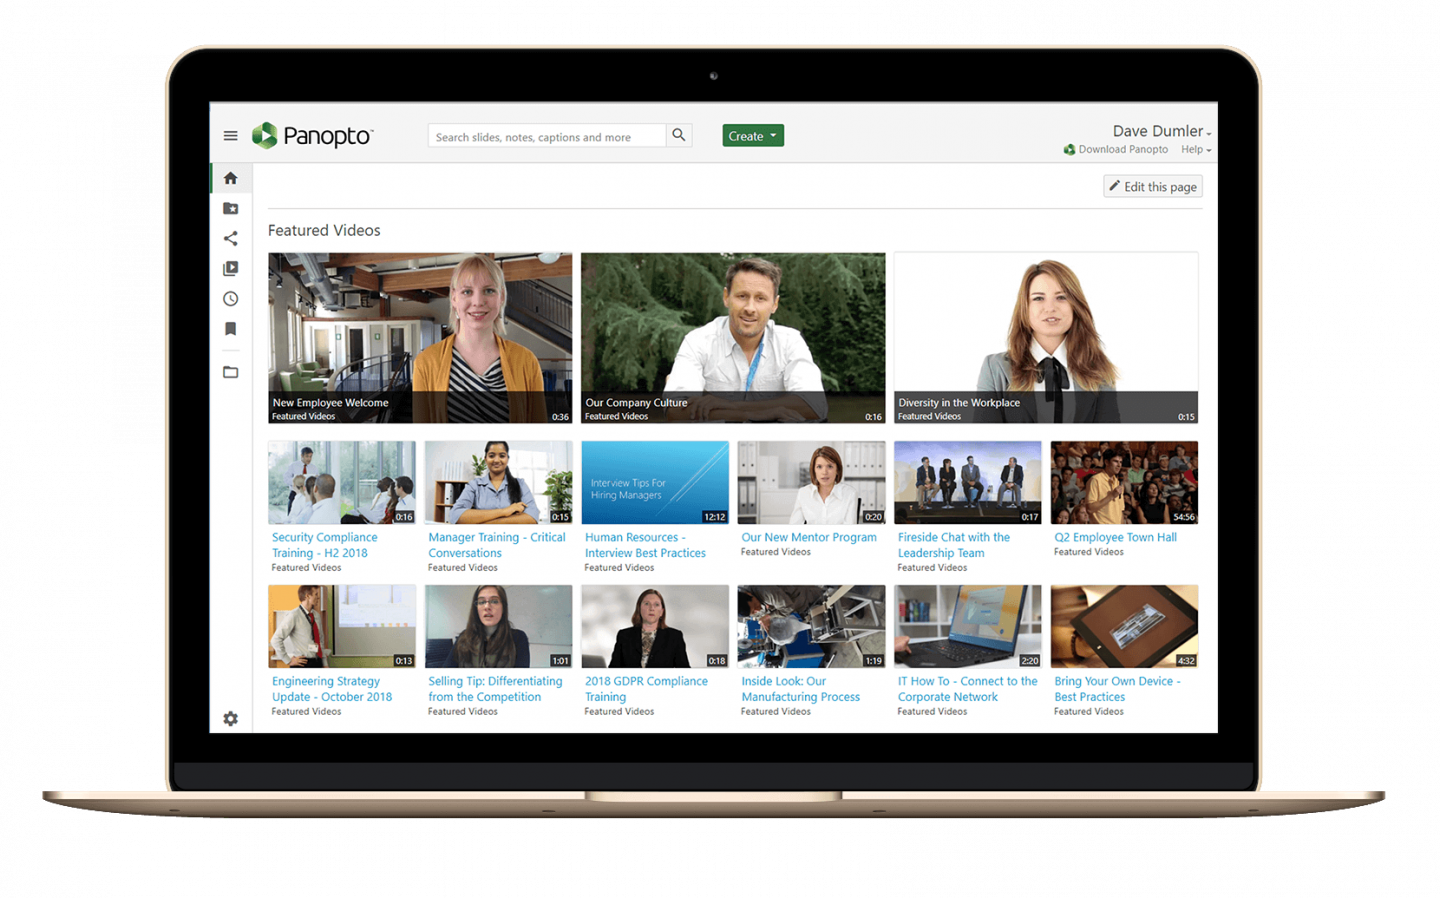 Socialize employees through searchable, on-demand video using Panopto's employee onboarding software and tools.